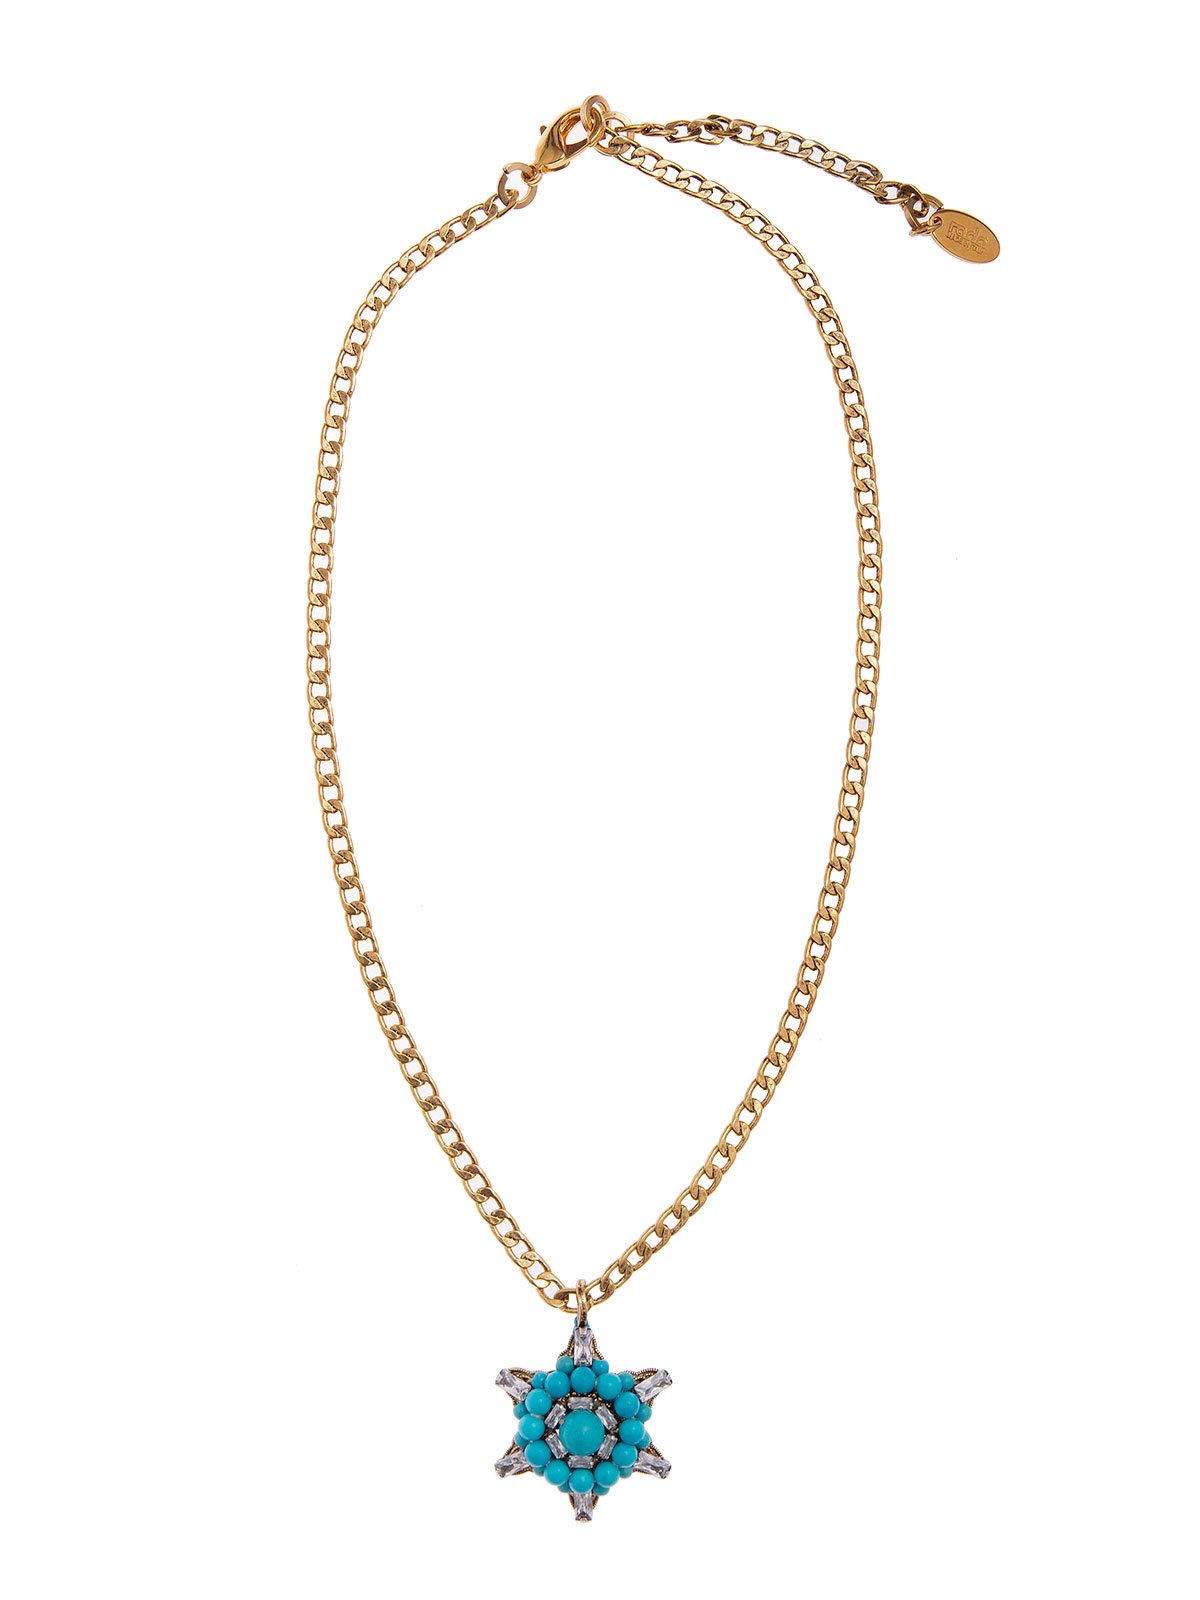 Chain necklace with beaded charm